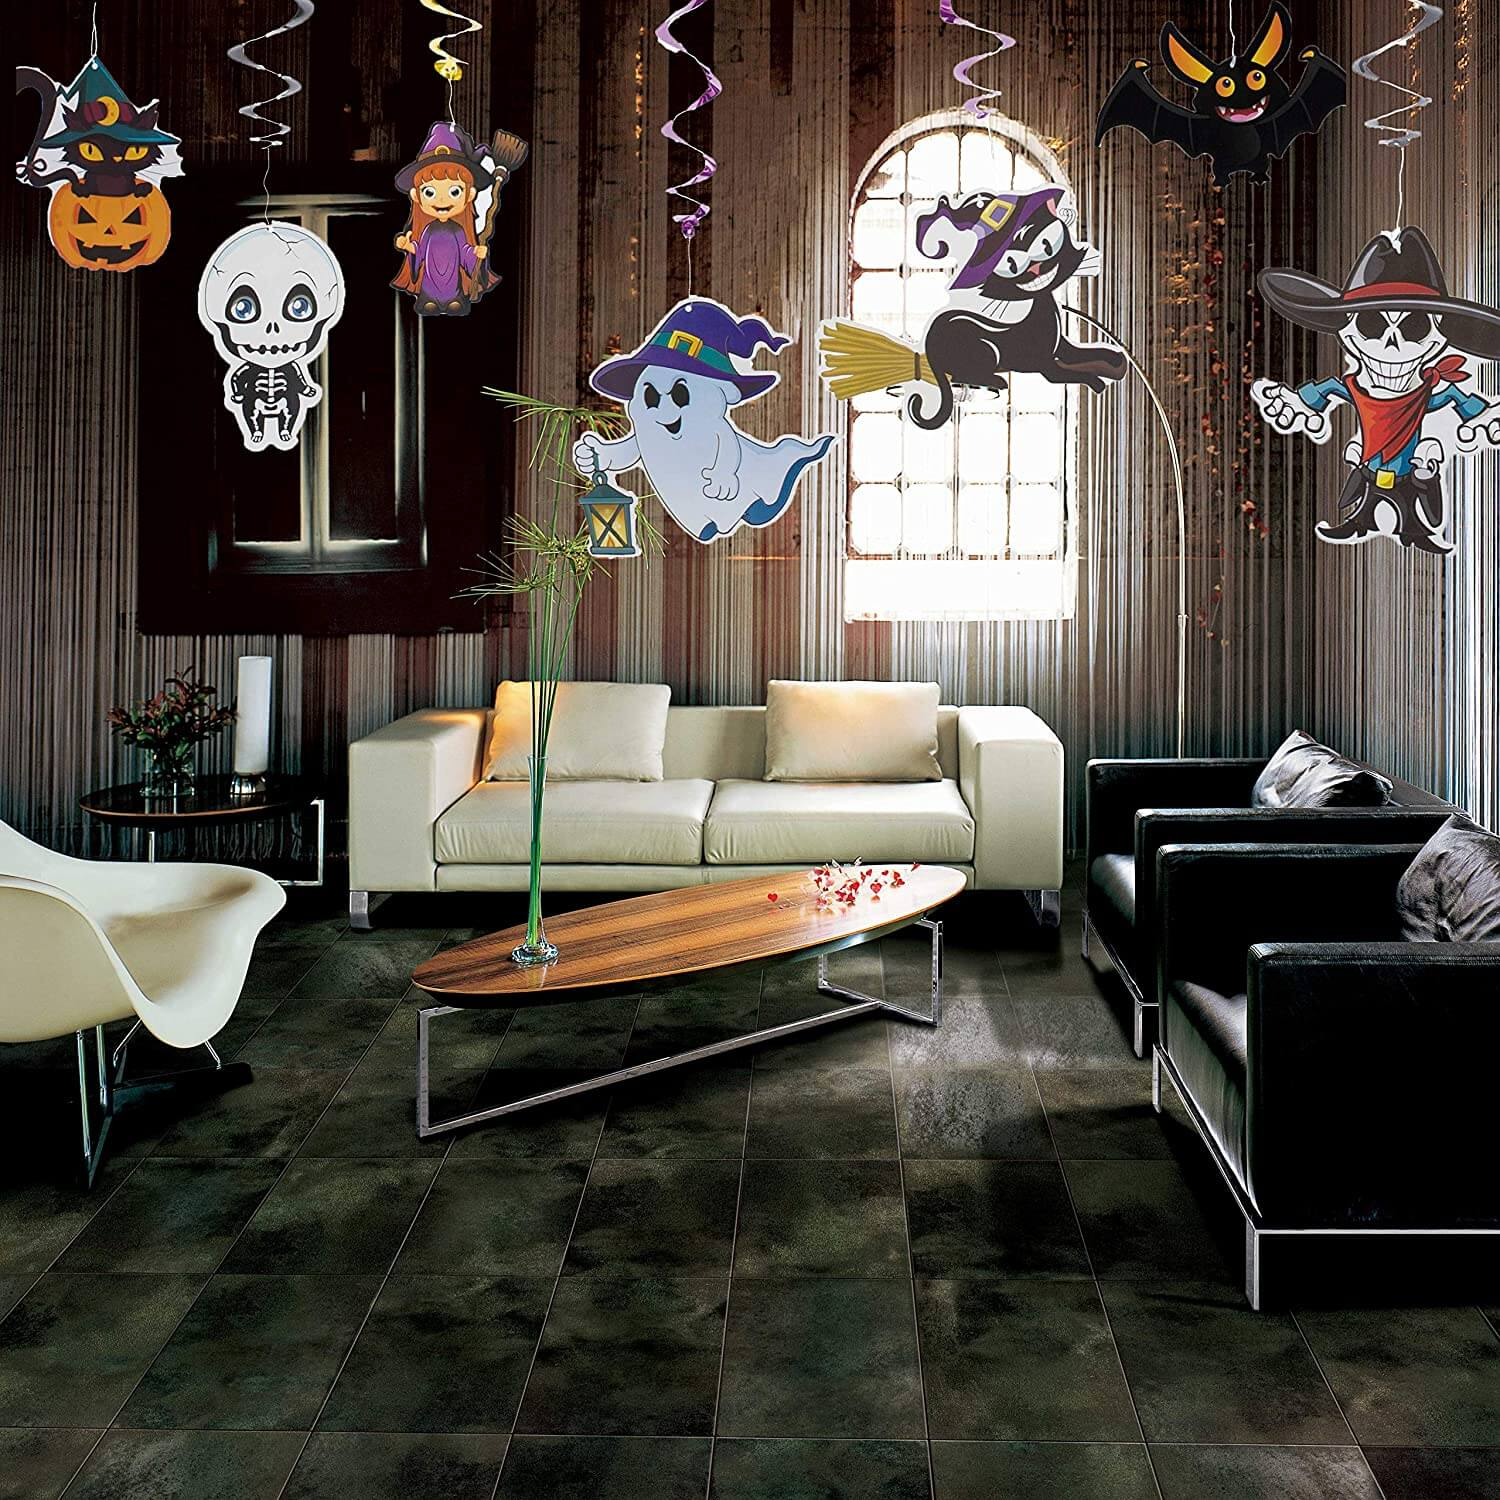 Halloween Swirl Ceiling Hanging and Wall Decoration